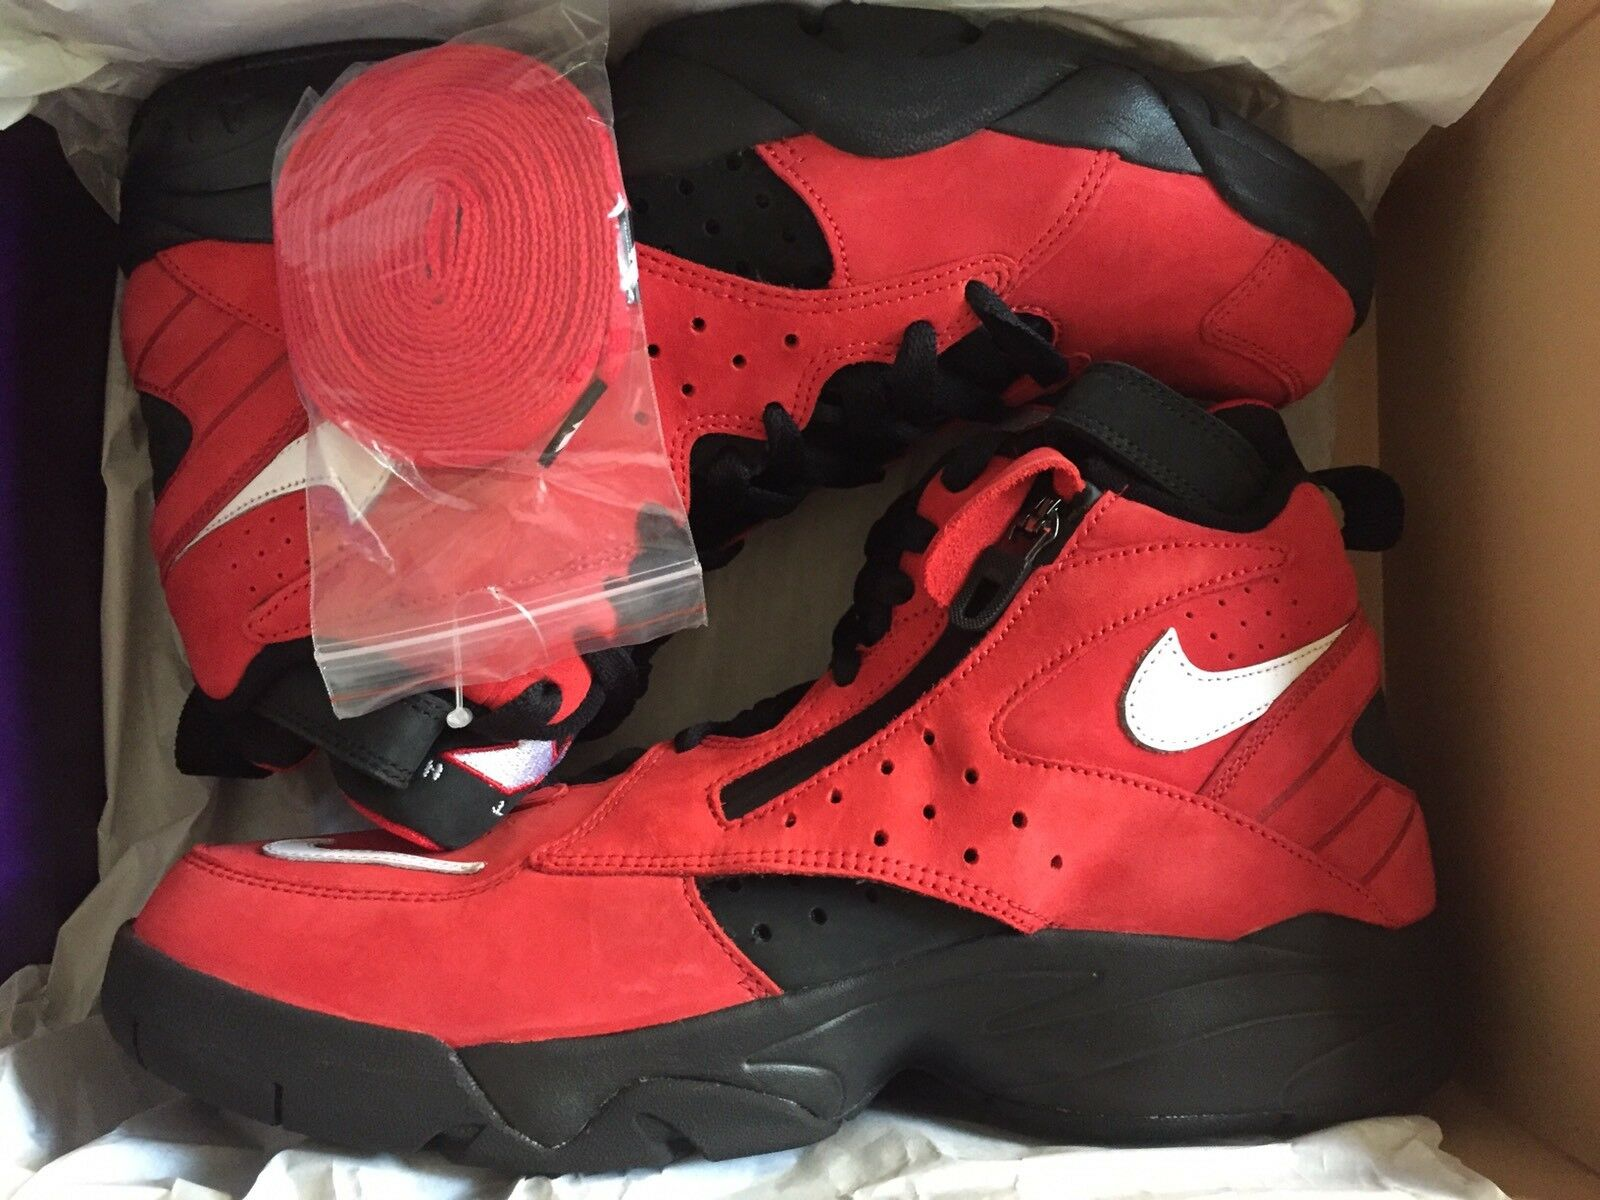 Kith X Nike Air Maestro 2 High Retro Scottie Pippen Size 9.5 100% Confirmed Red